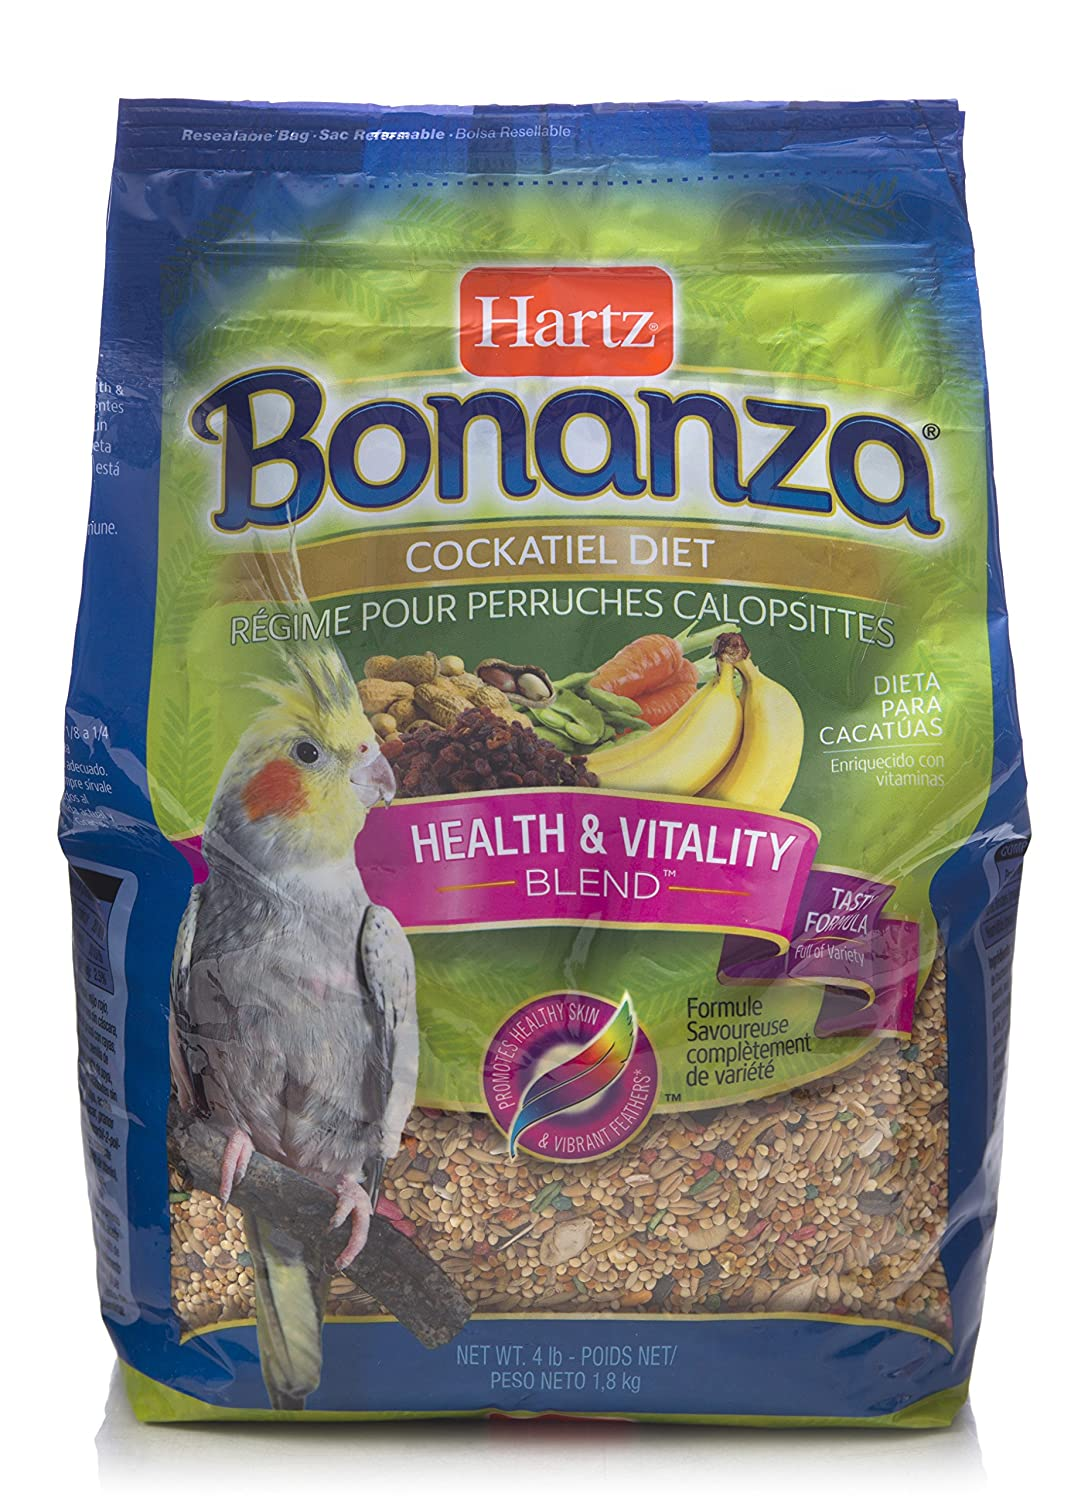 Hartz Bonanza 4-Pound Gourmet Diet Supply